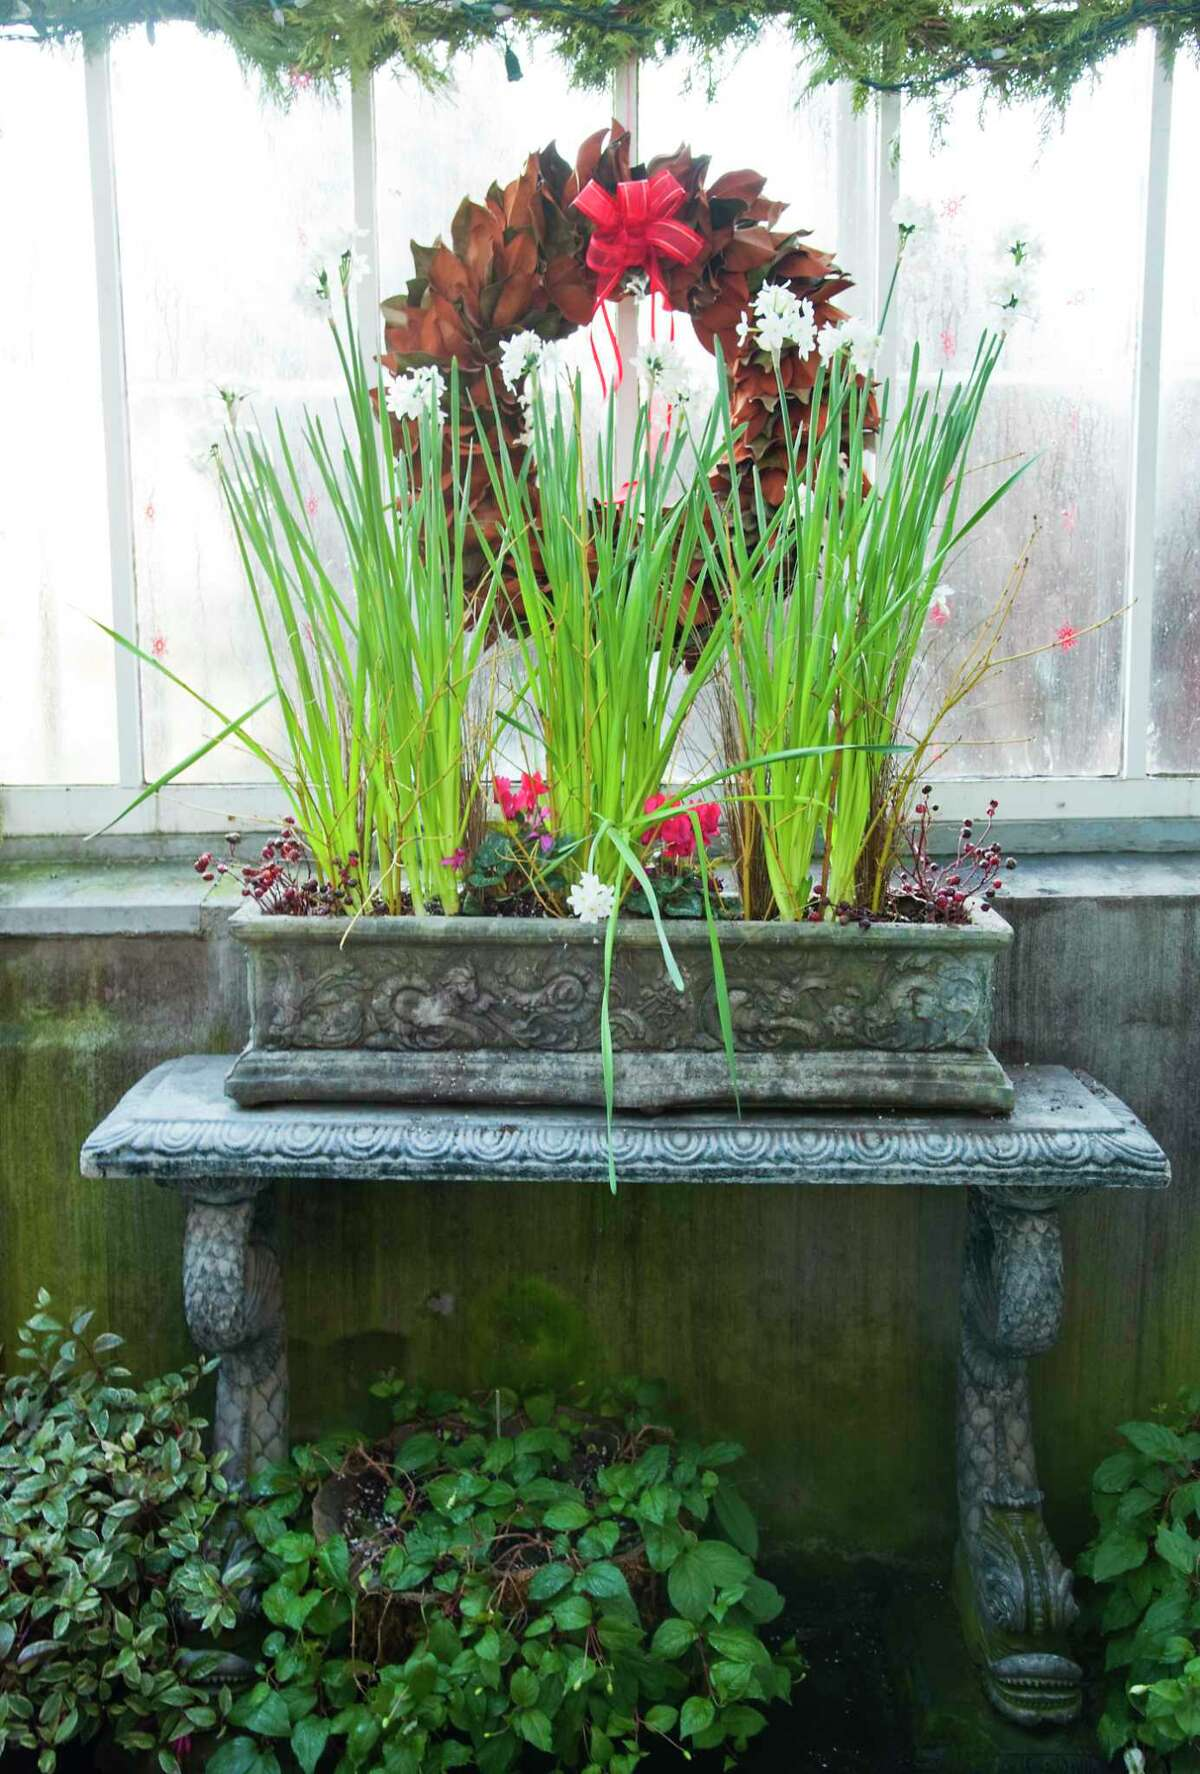 Paperwhites are of one of the traditional Christmas gift flowers that will long outlast the holidays with proper care.